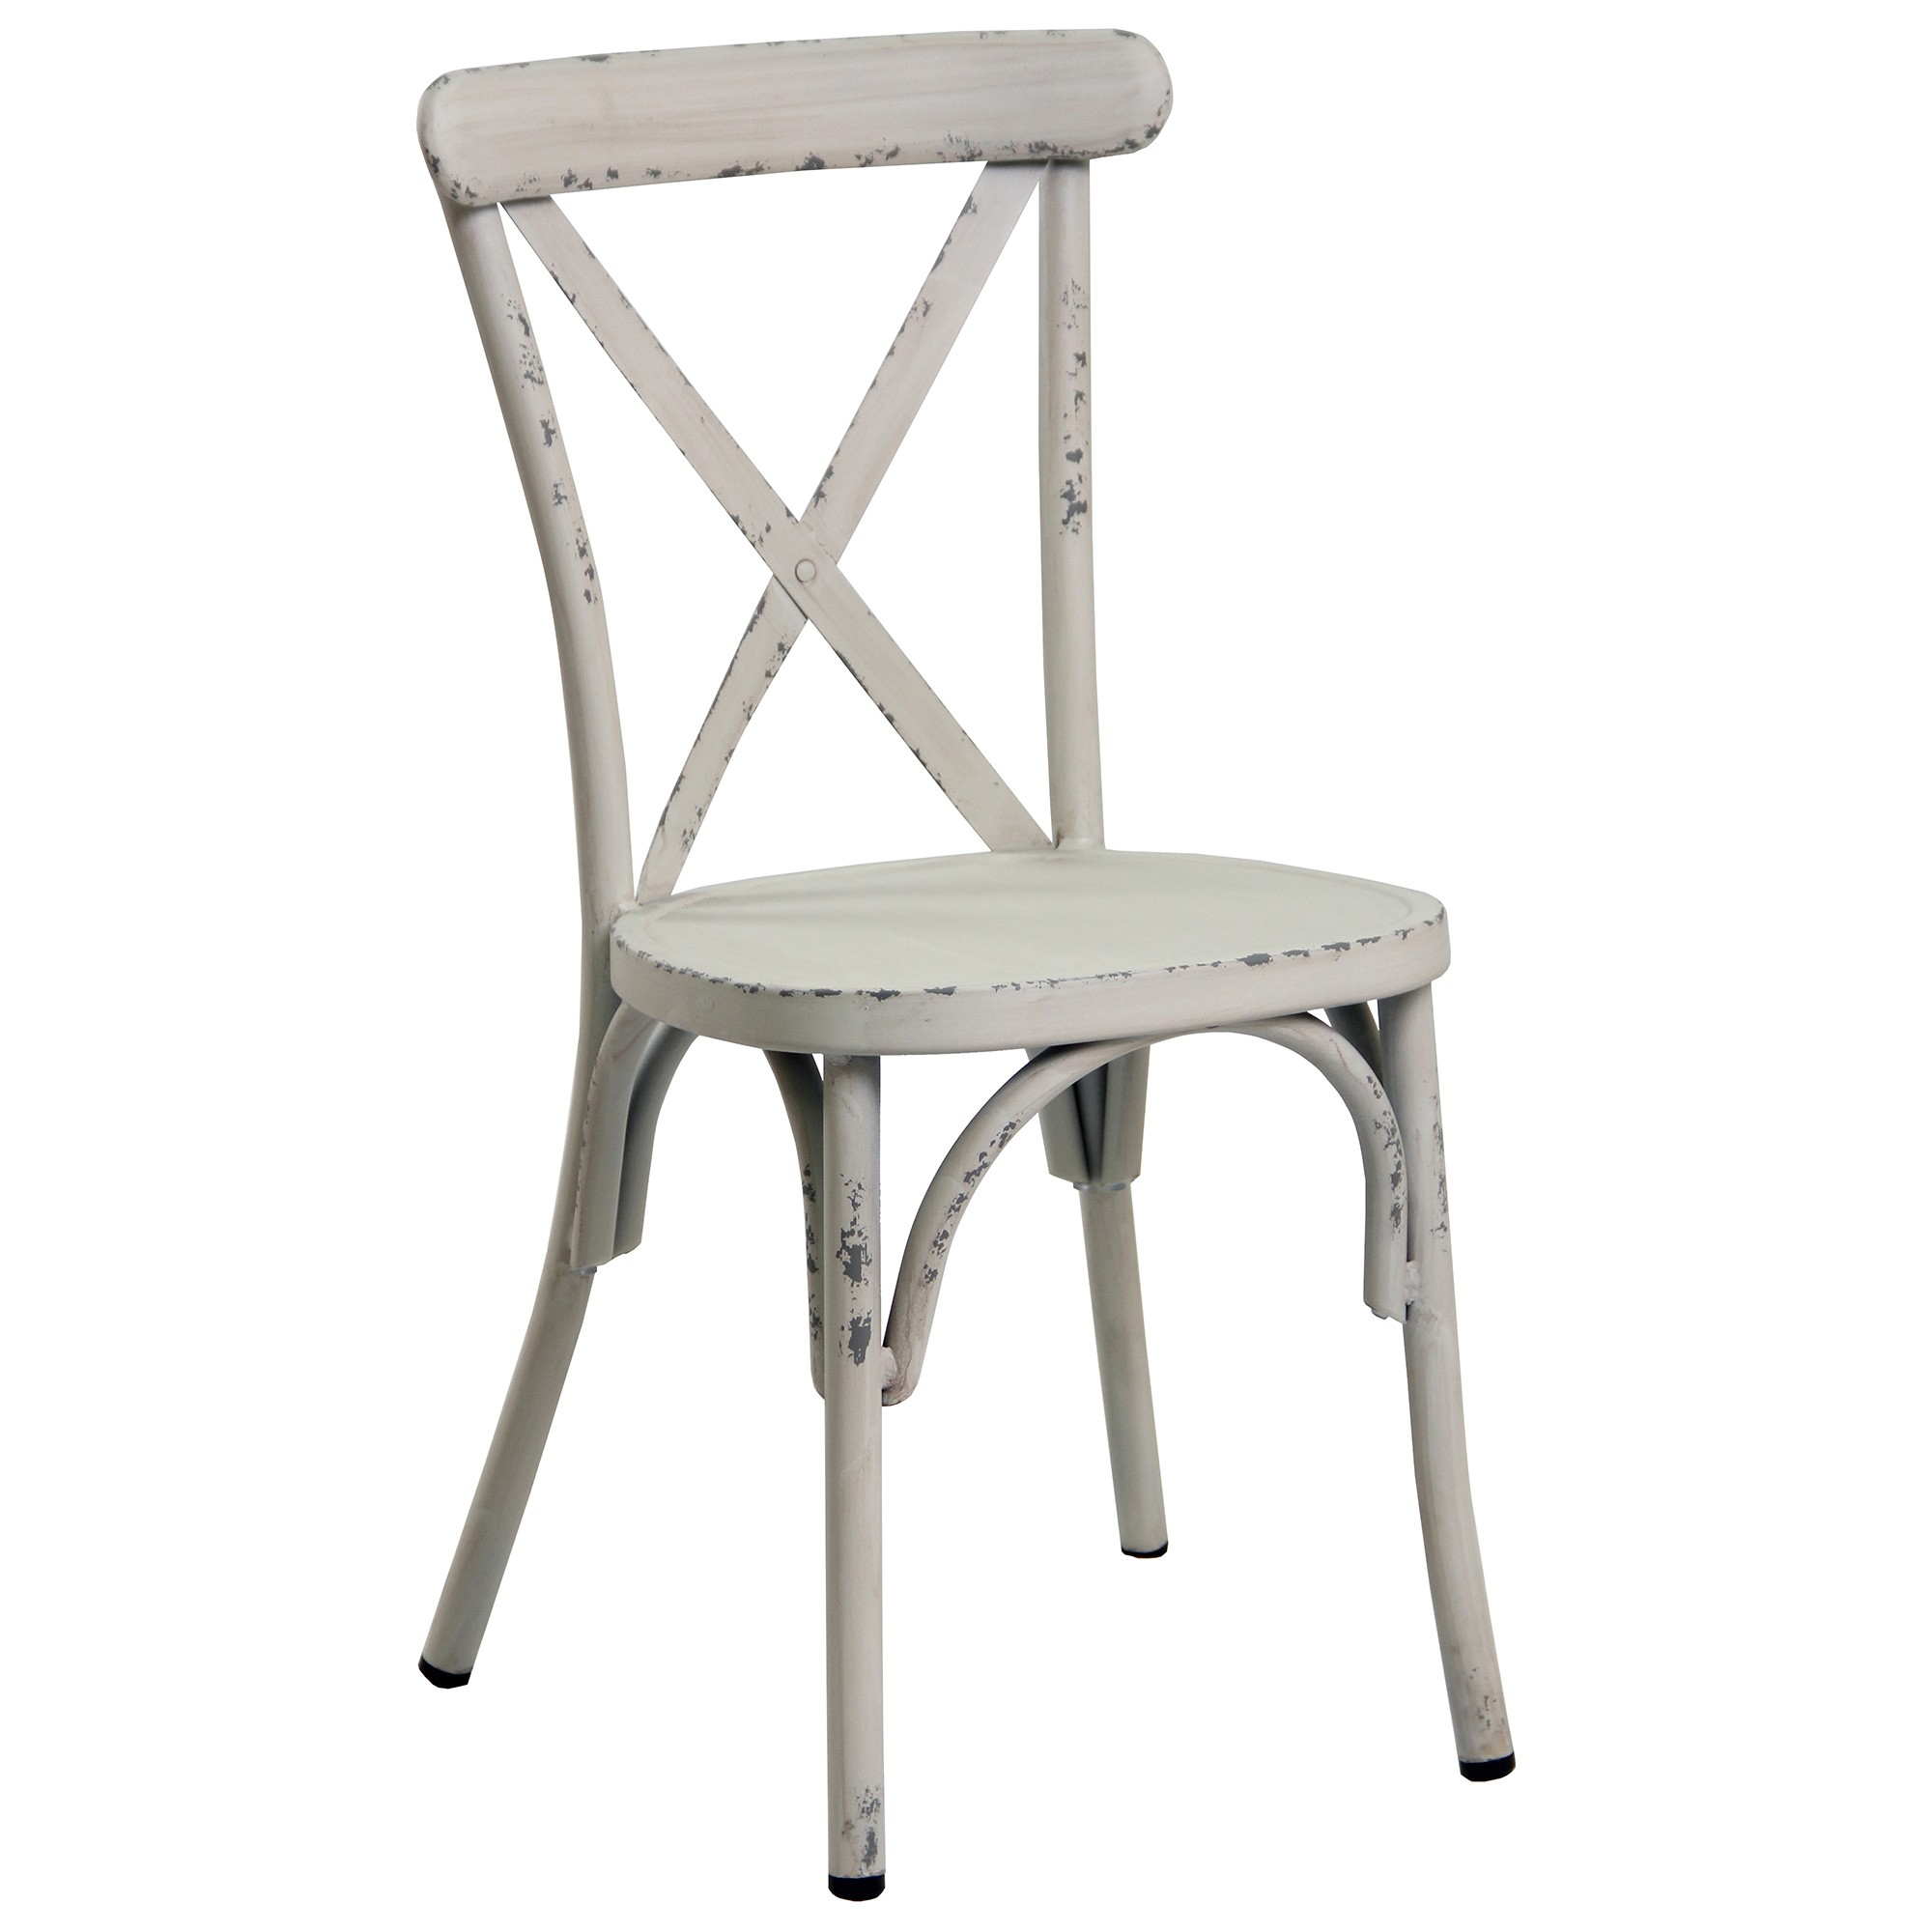 Set of 2 Ochey Commercial Grade Aluminium Indoor / Outdoor Cross Back Dining Chairs, Distressed White